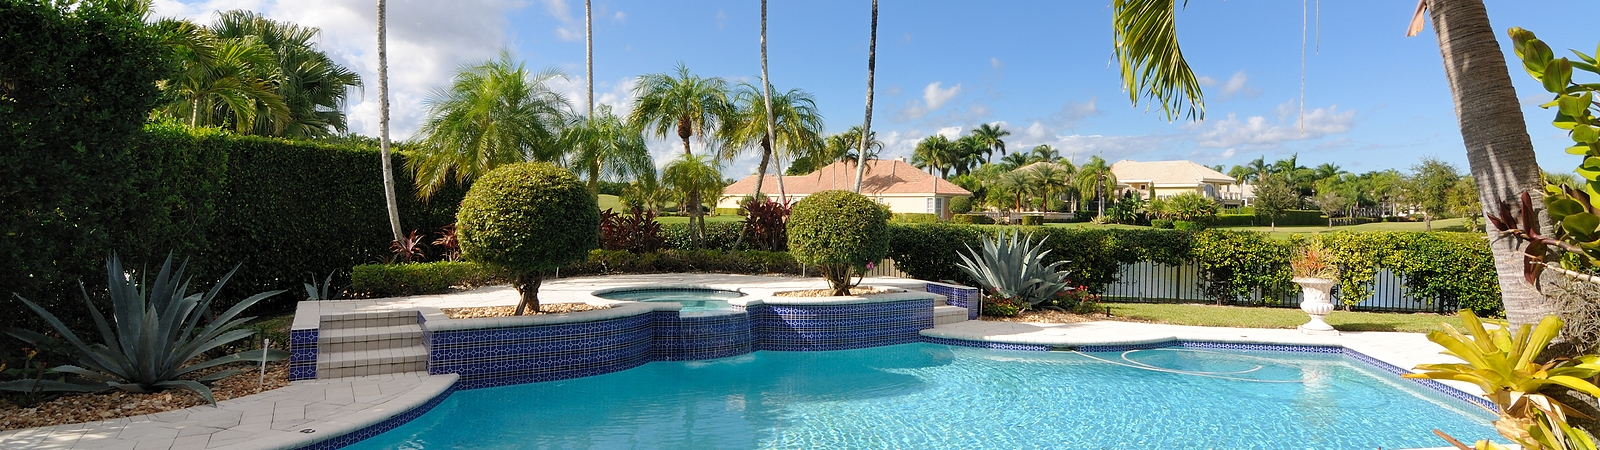 Ocala pool homes for sale ocala real estate source for Florida pool homes